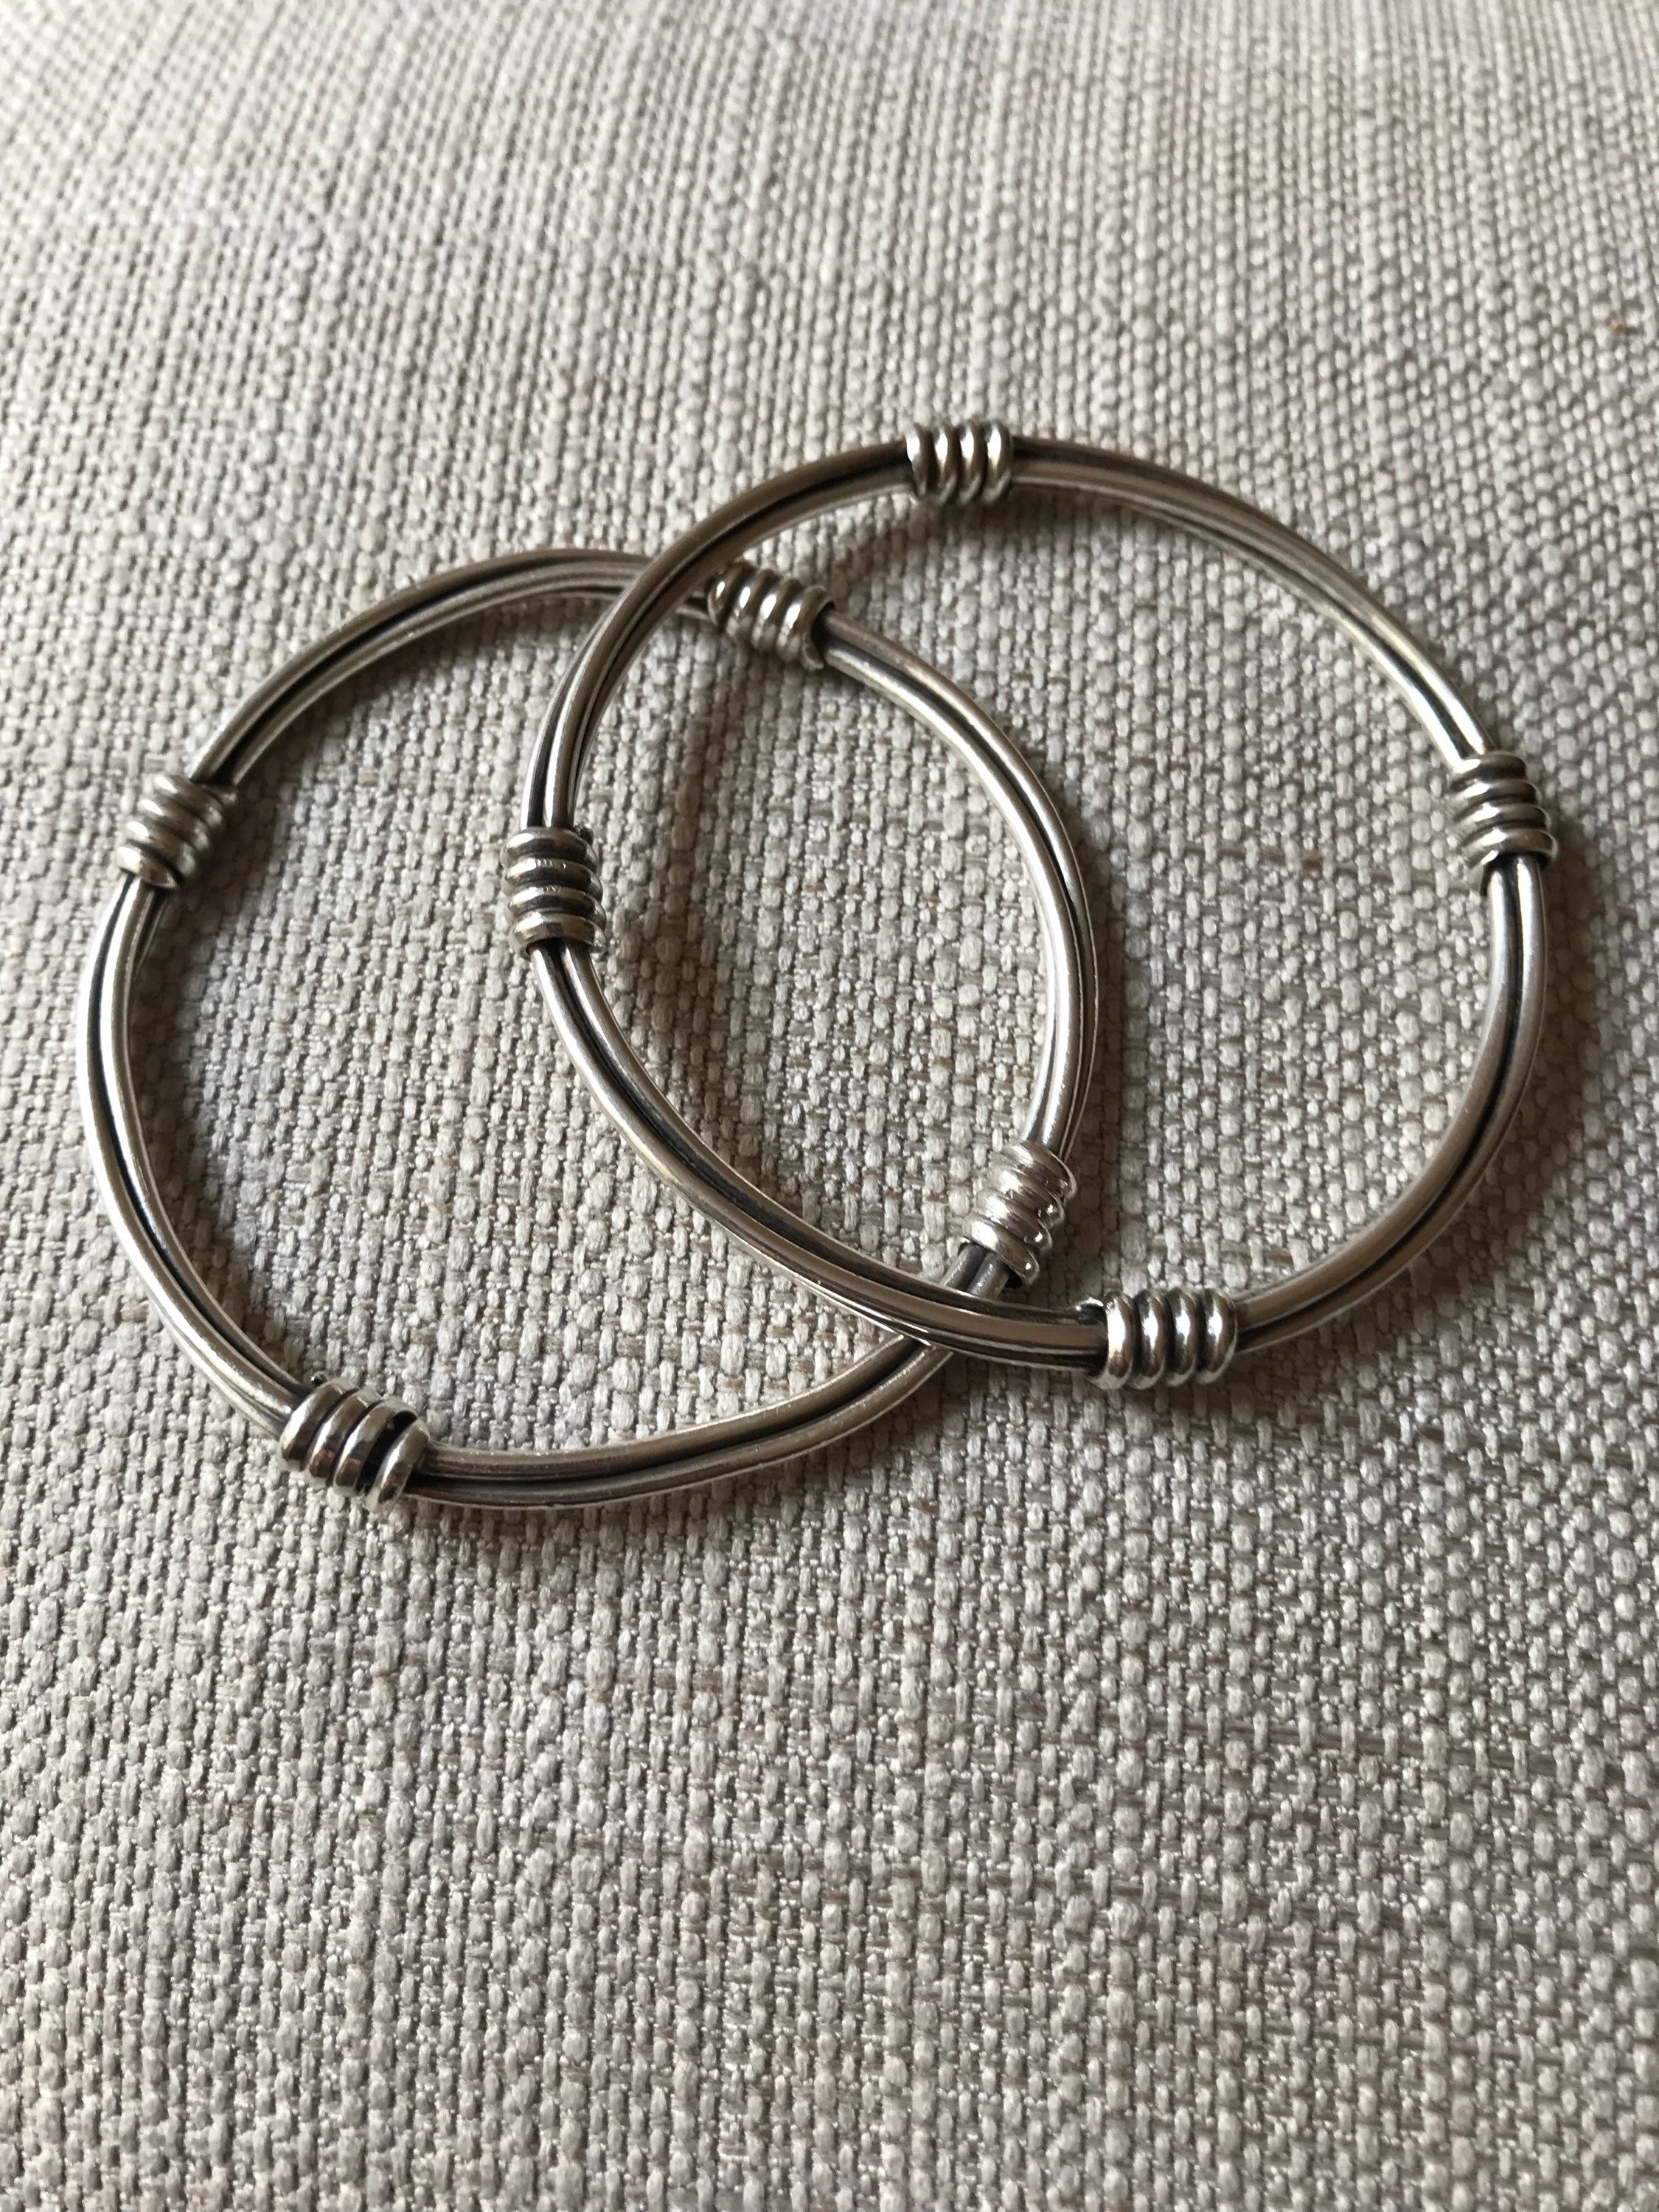 Two Vintage Twisted Wire Sterling Silver Bracelets/ bangles.